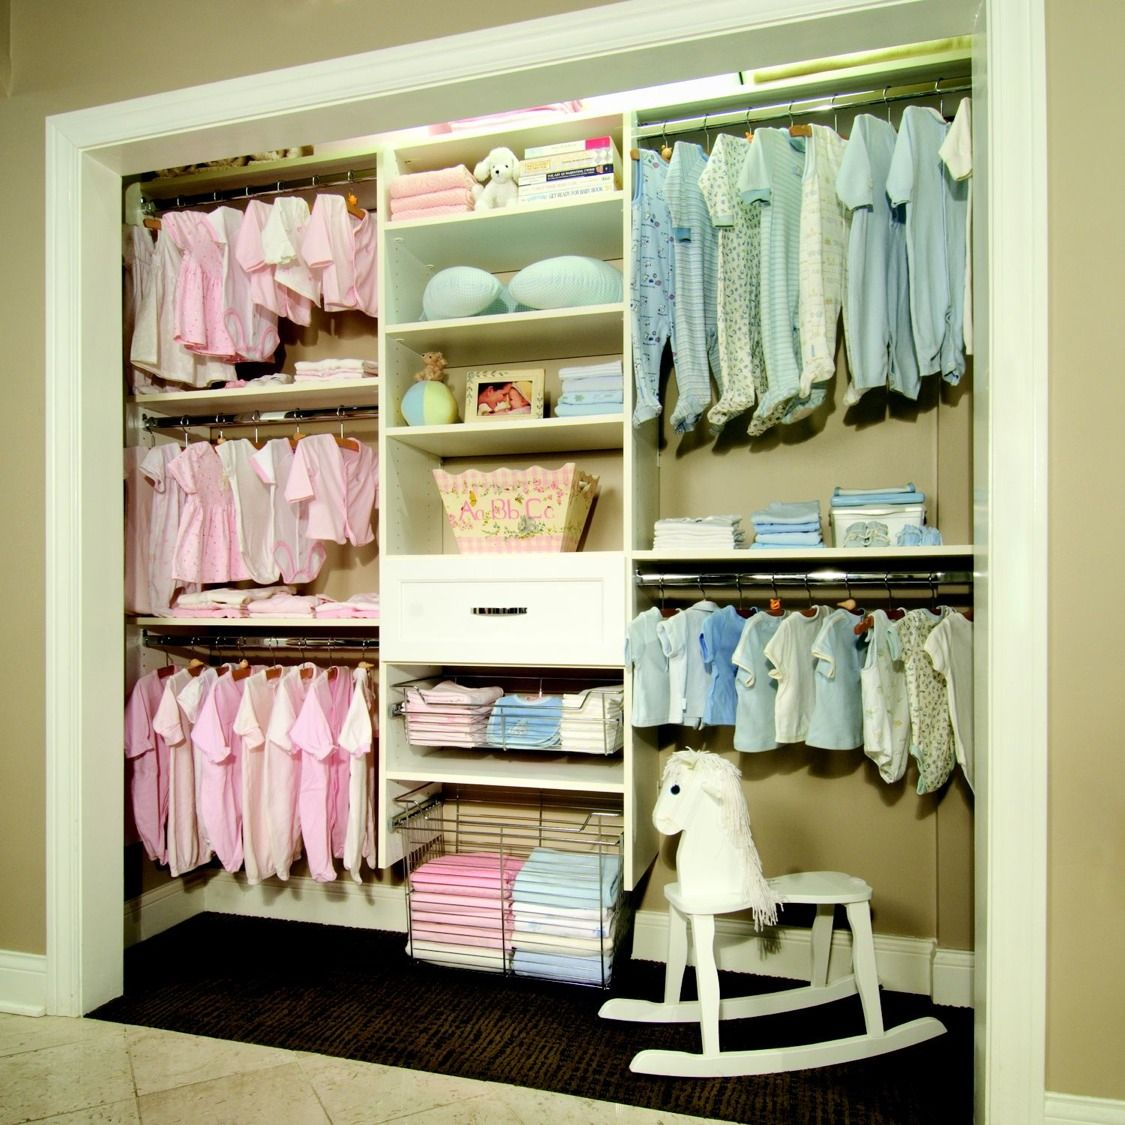 Delightful Most Organized Baby Closet Iu0027ve Ever Seen. For When I Have Twins One Day!